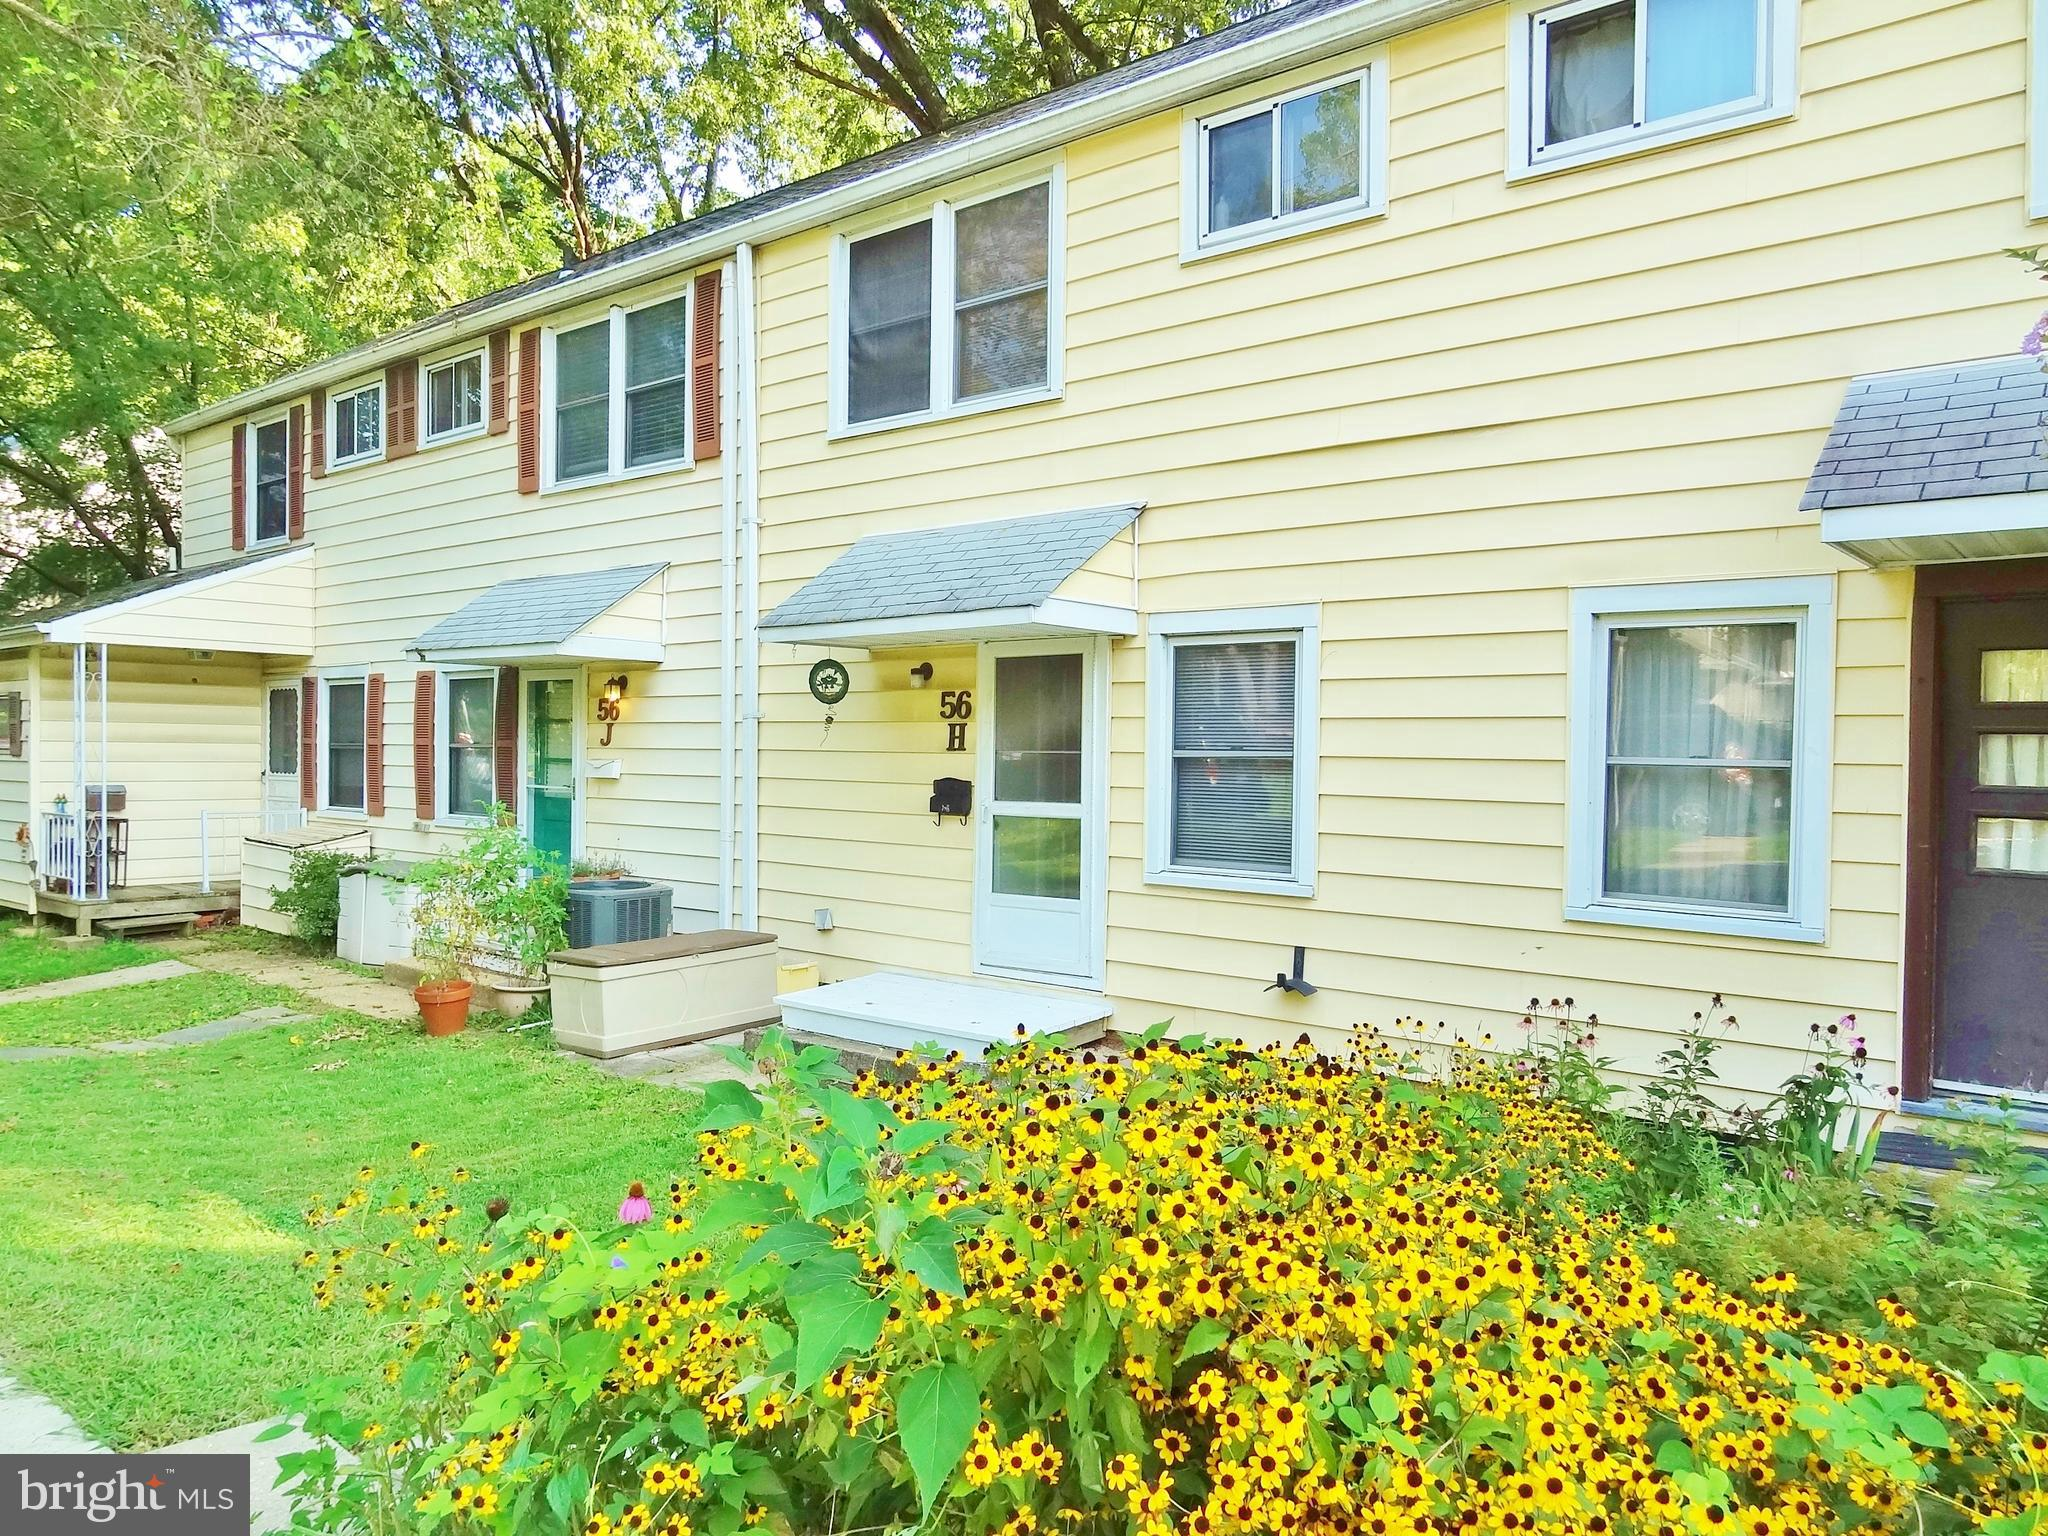 Remodeled GHI townhome with beautiful laminate flooring on main level.  Large, fenced backyard with